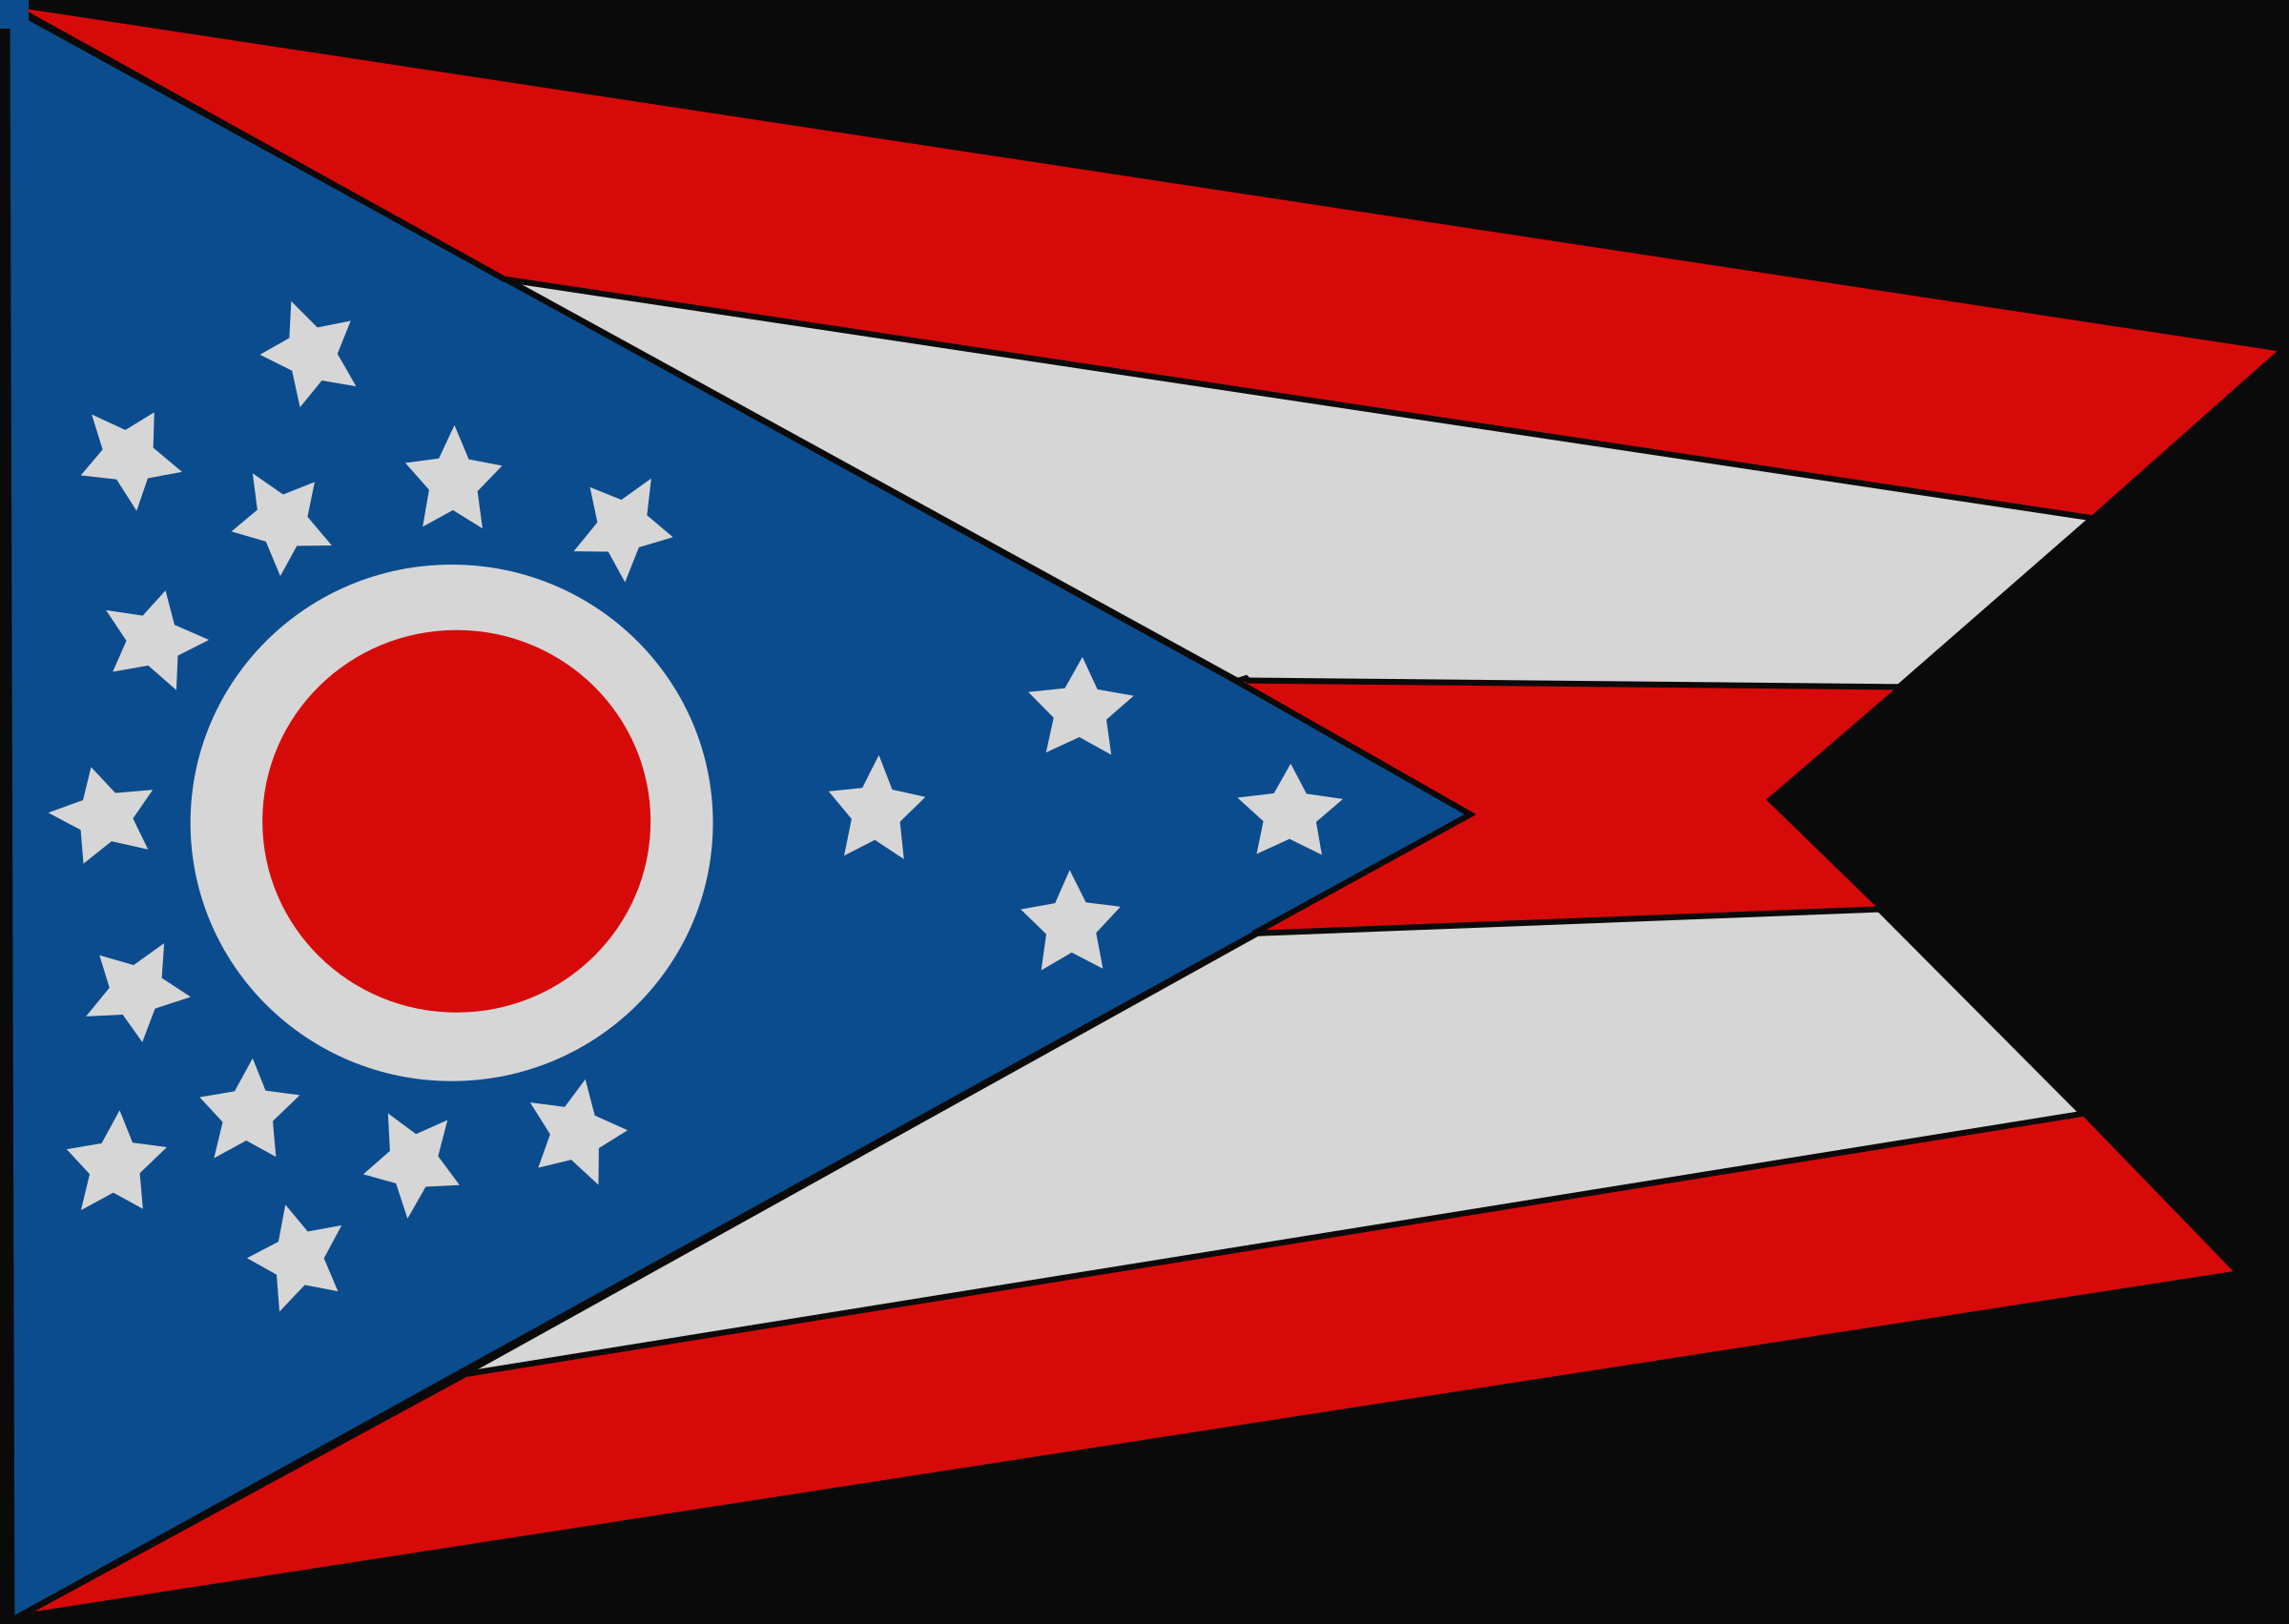 Clipart Ohio State Flag Clipart.